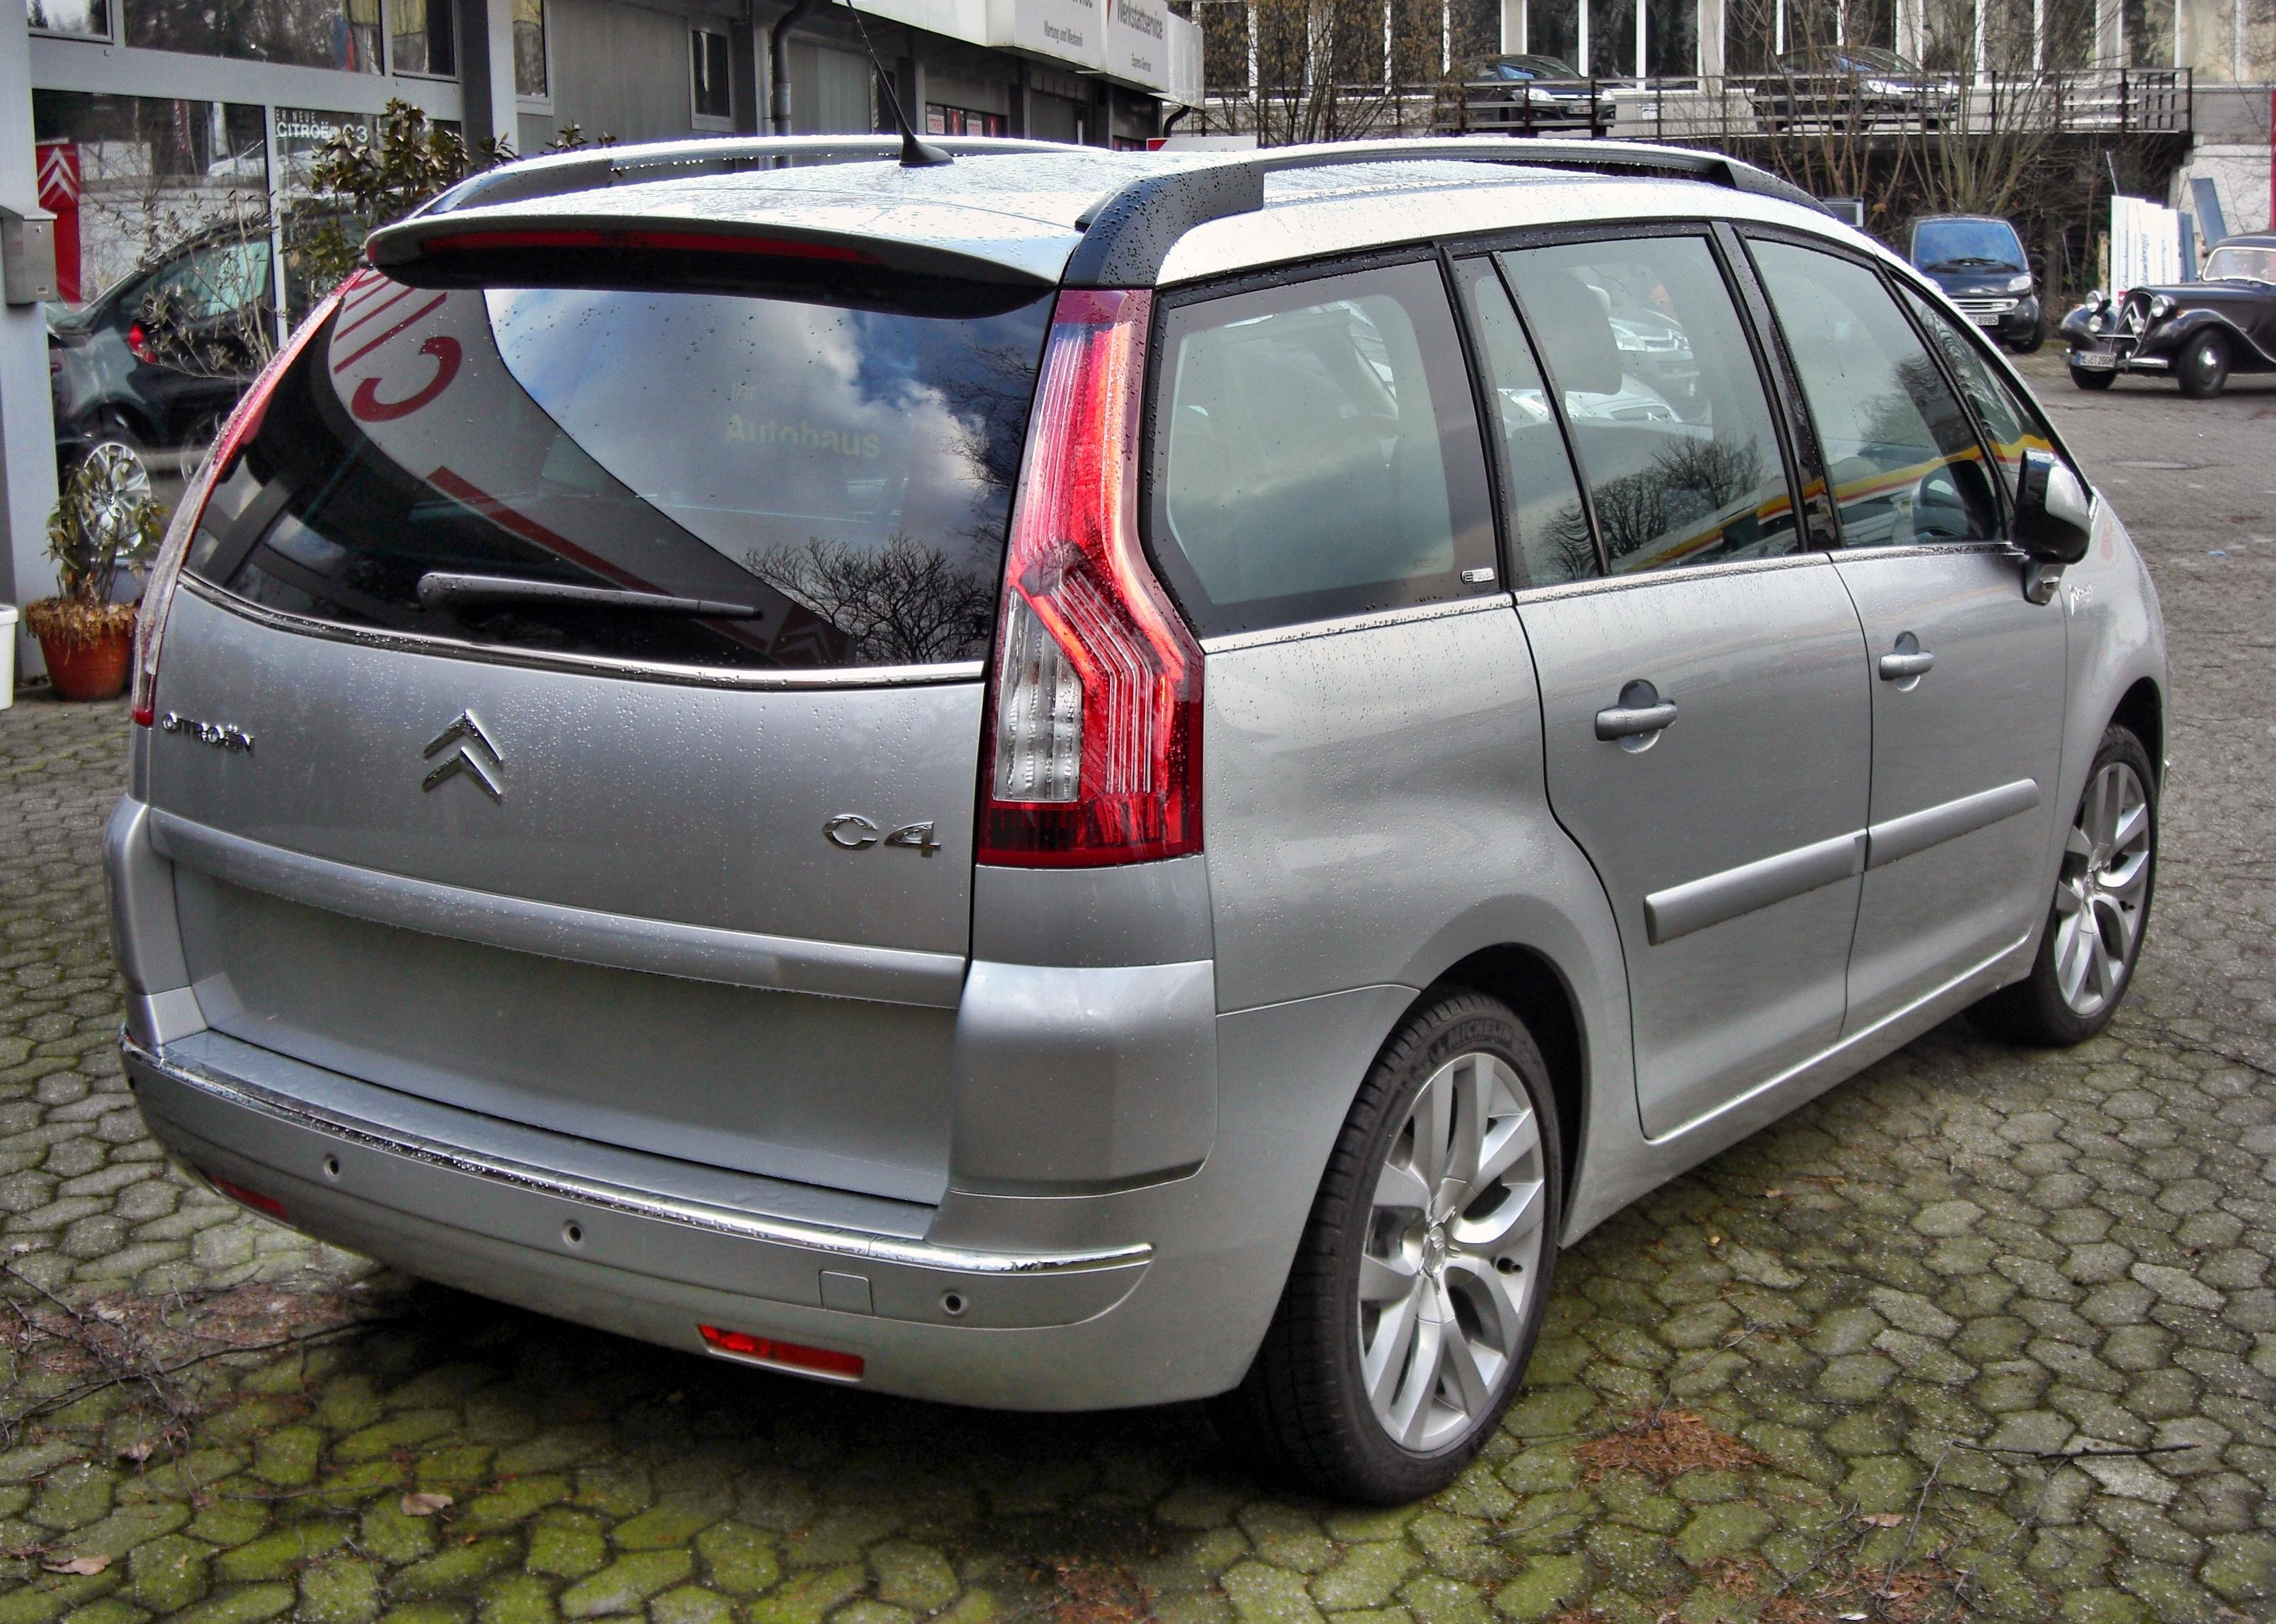 plik citro n grand c4 picasso exclusive wikipedia wolna encyklopedia